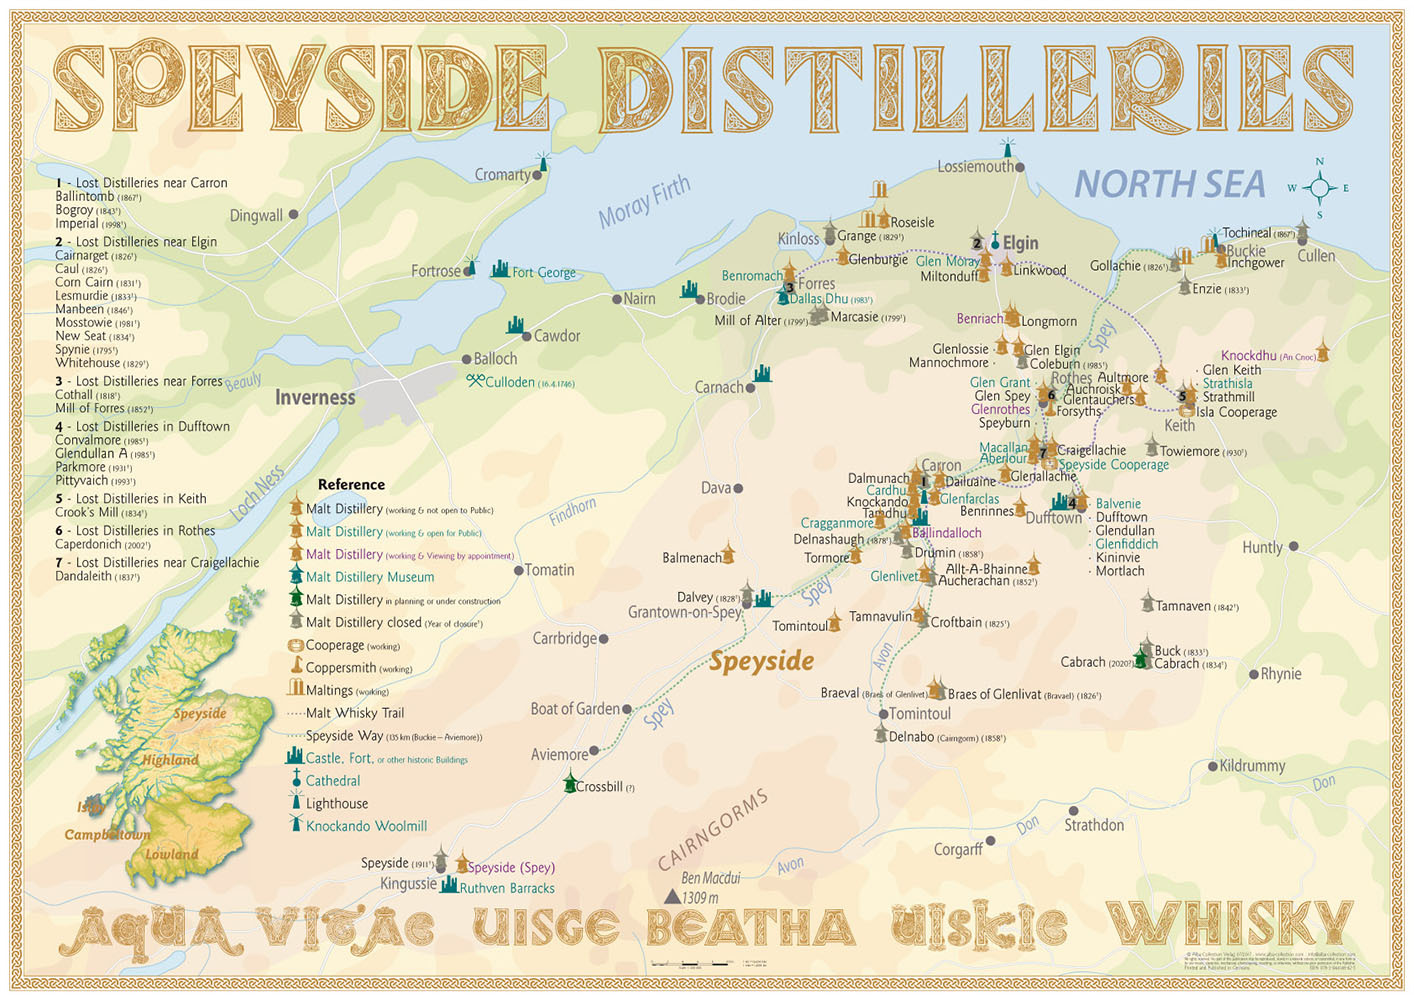 Whisky Distilleries Speyside - Tasting Map